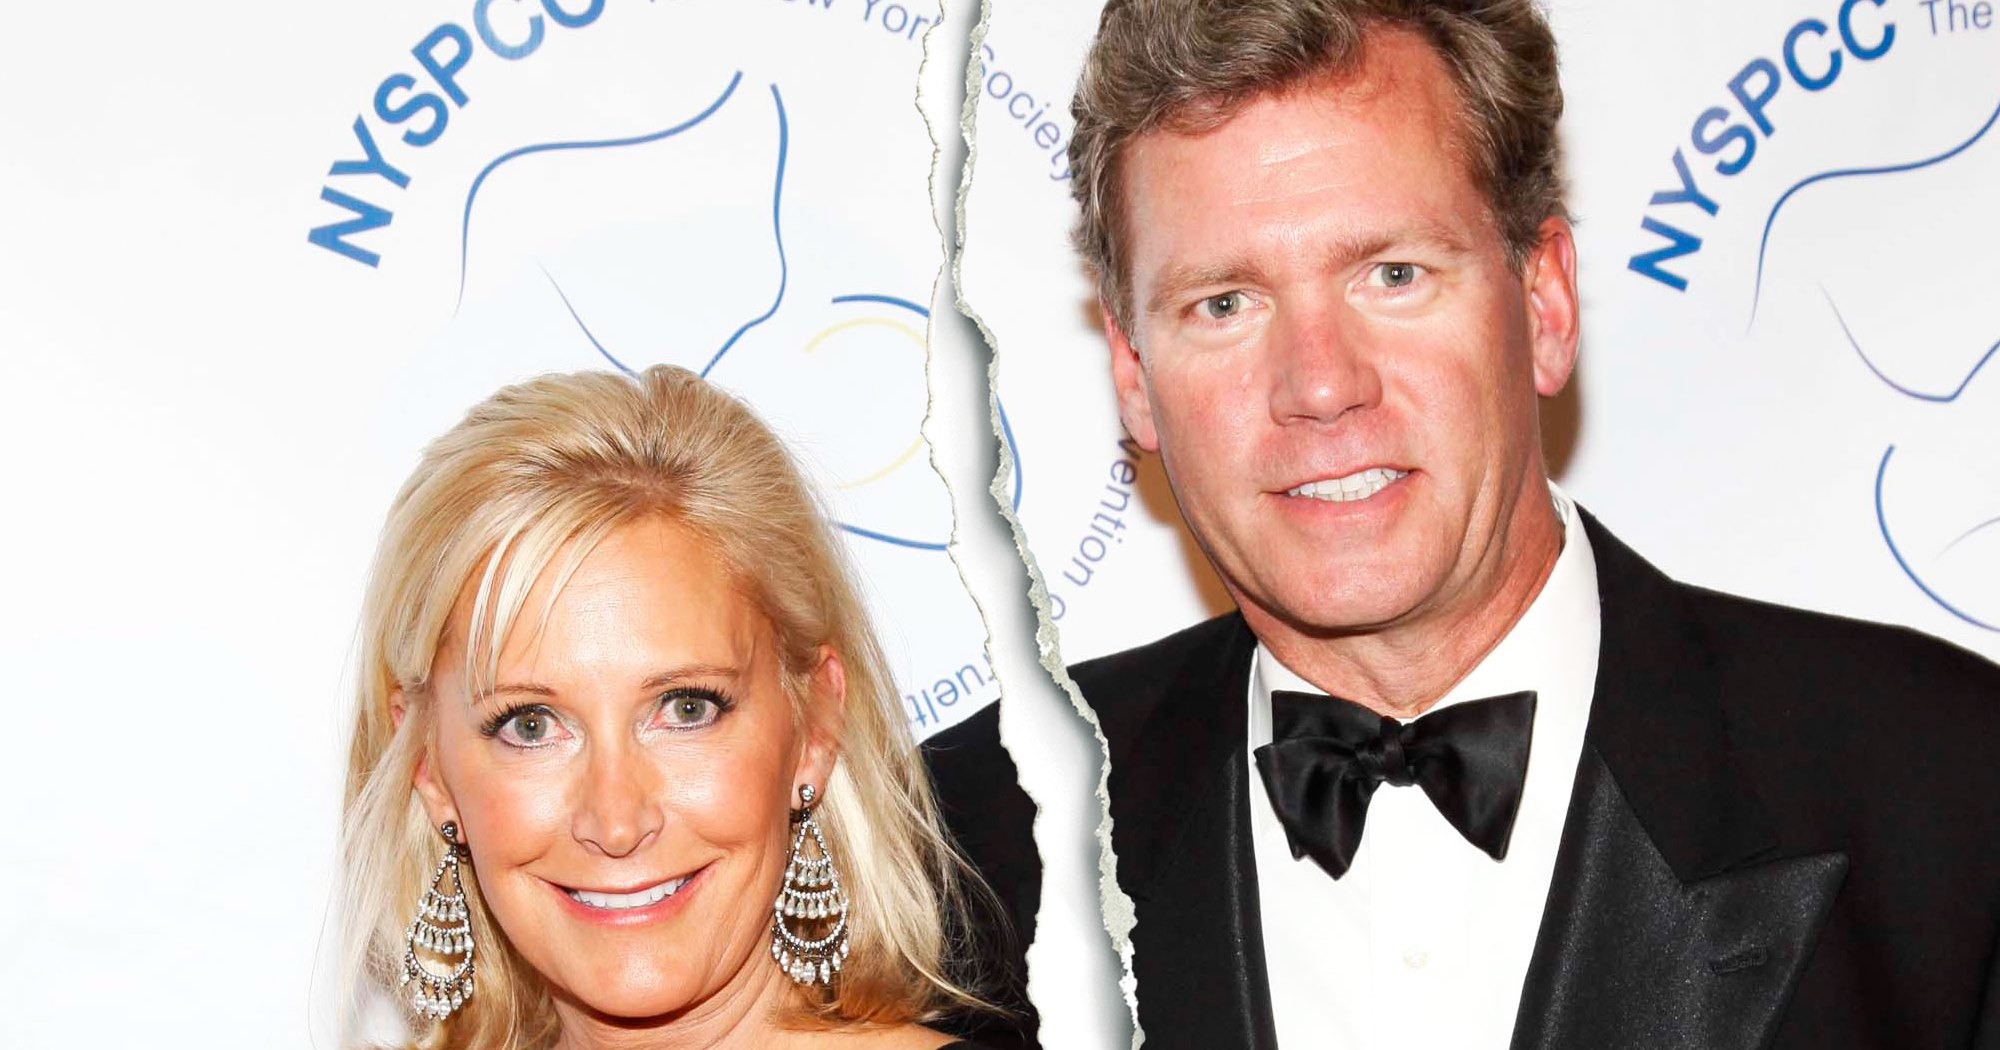 'To Catch a Predator' Host Chris Hansen's Wife Mary Joan Files for Divorce After 30 Years of Marriage